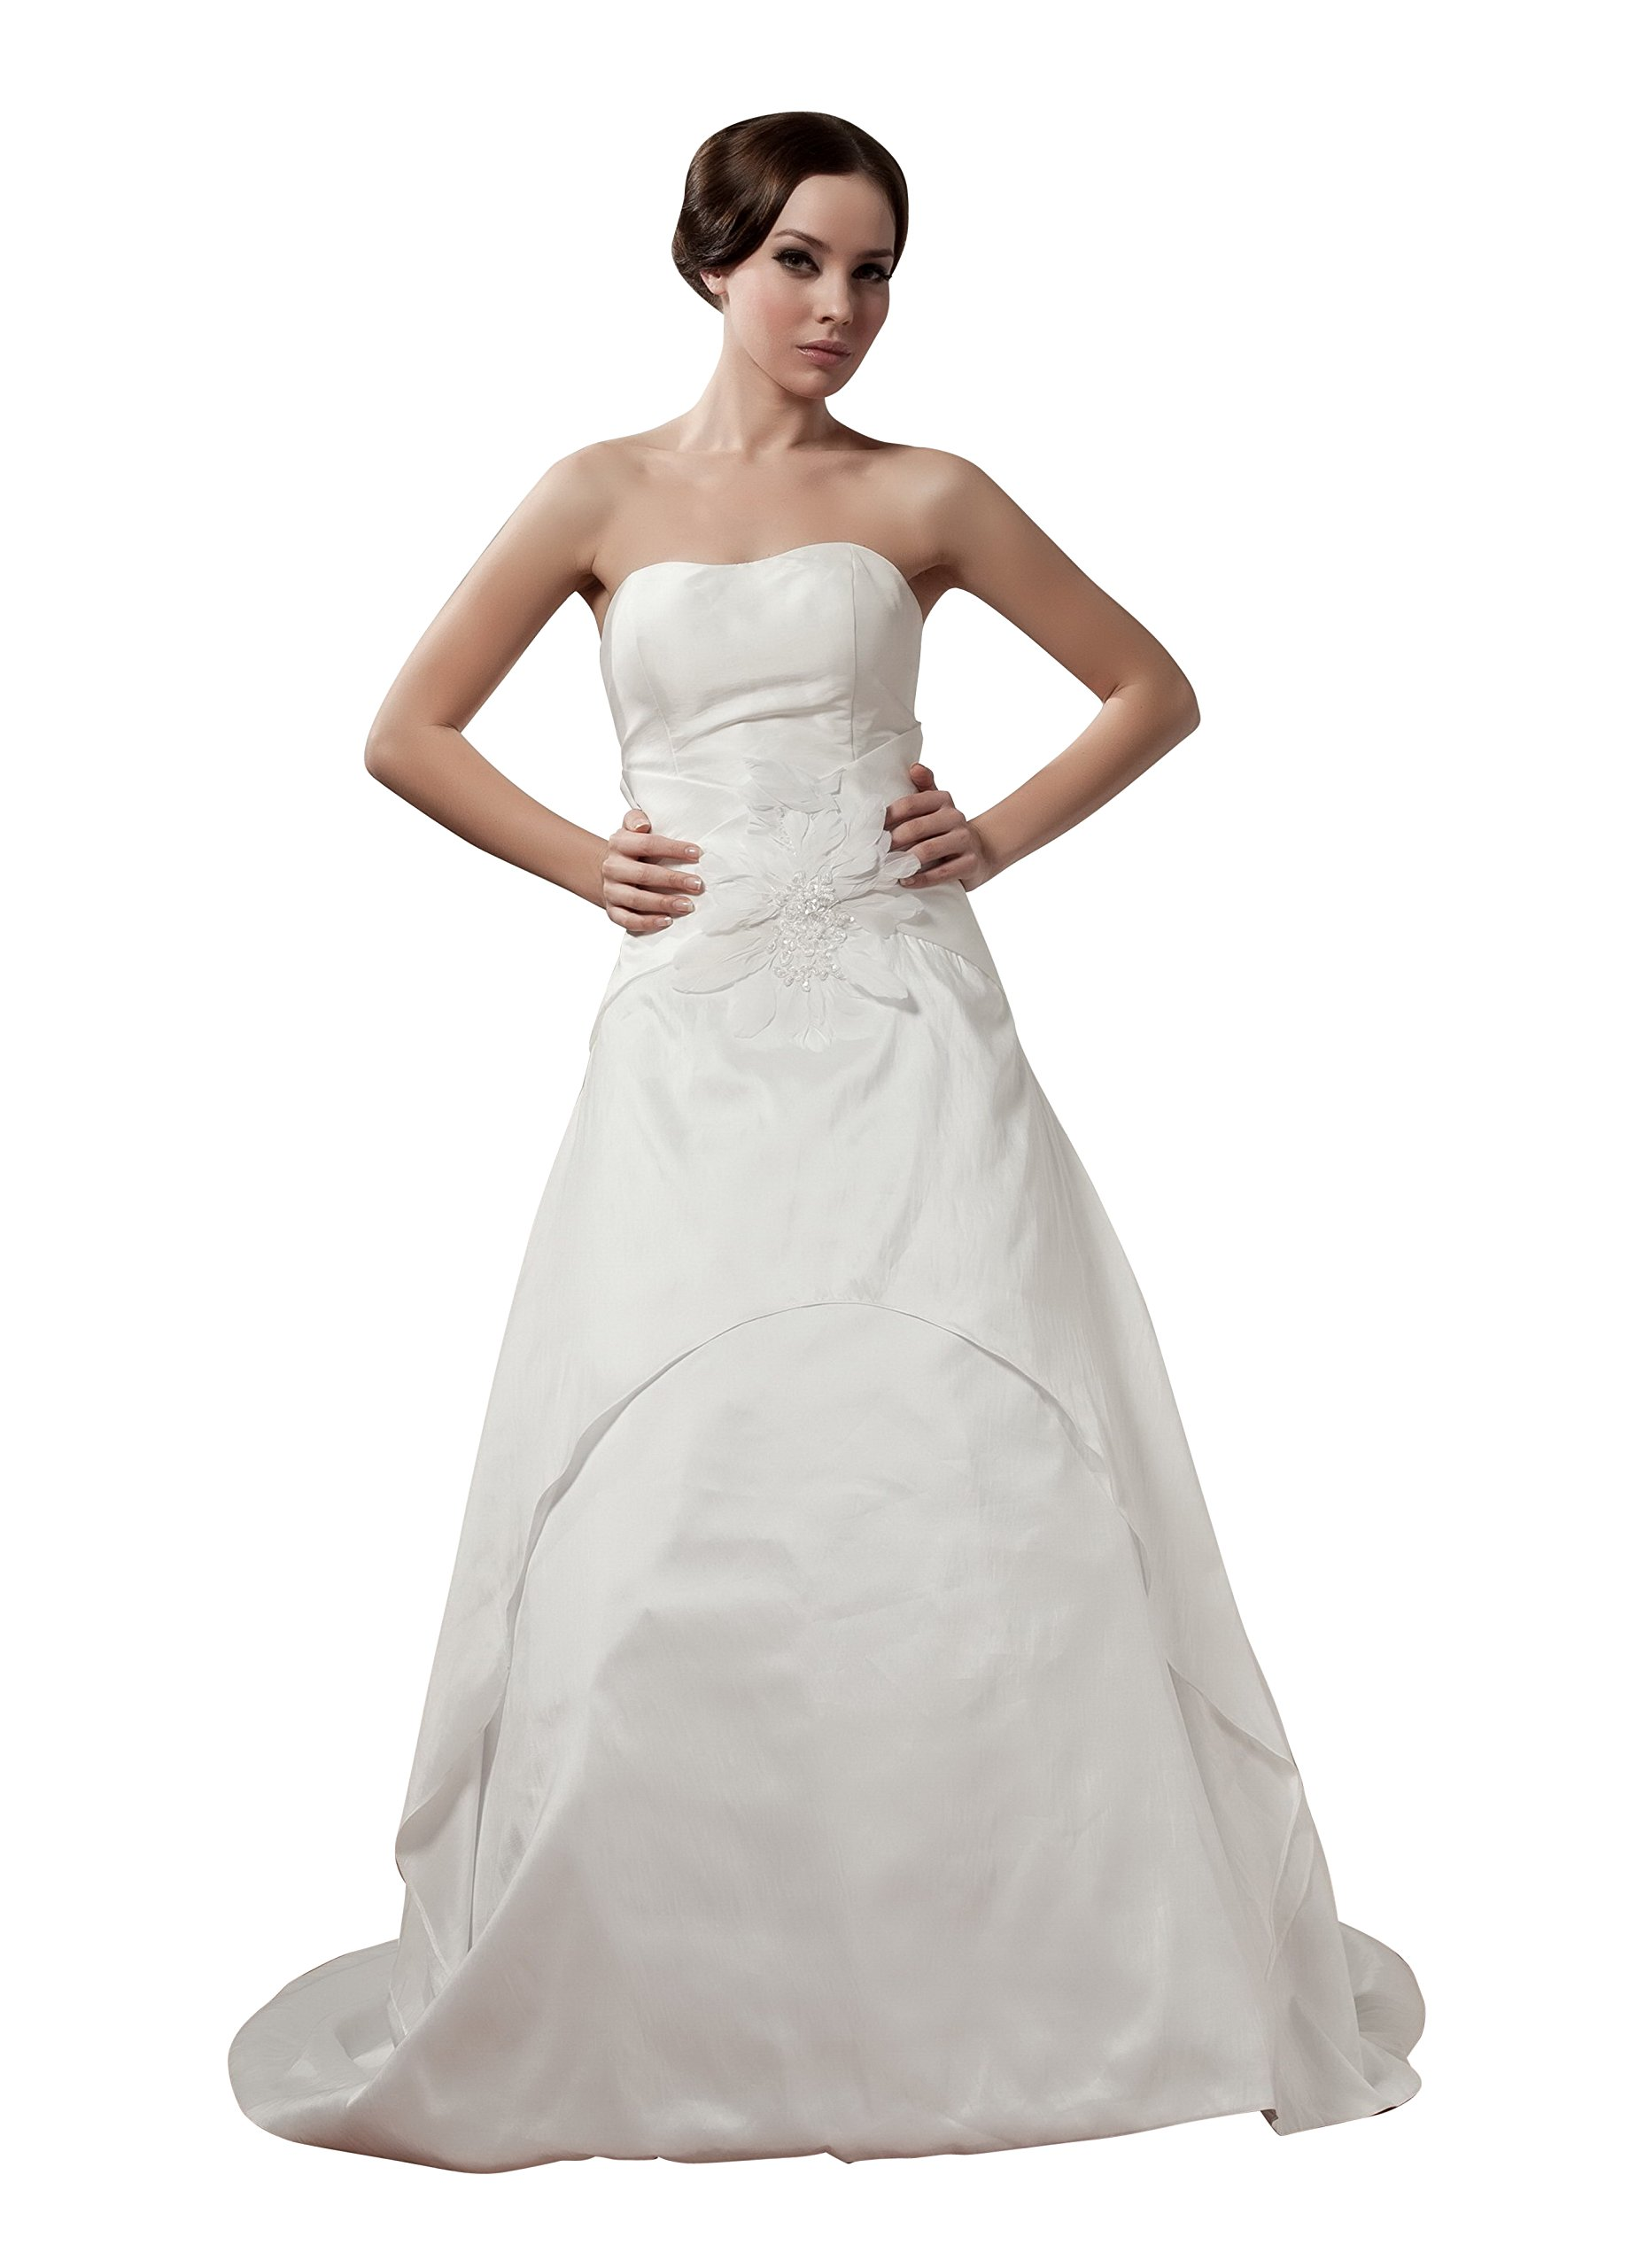 Vogue007 Womens Strapless Satin Pongee Wedding Dress with Flower, ColorCards, 18